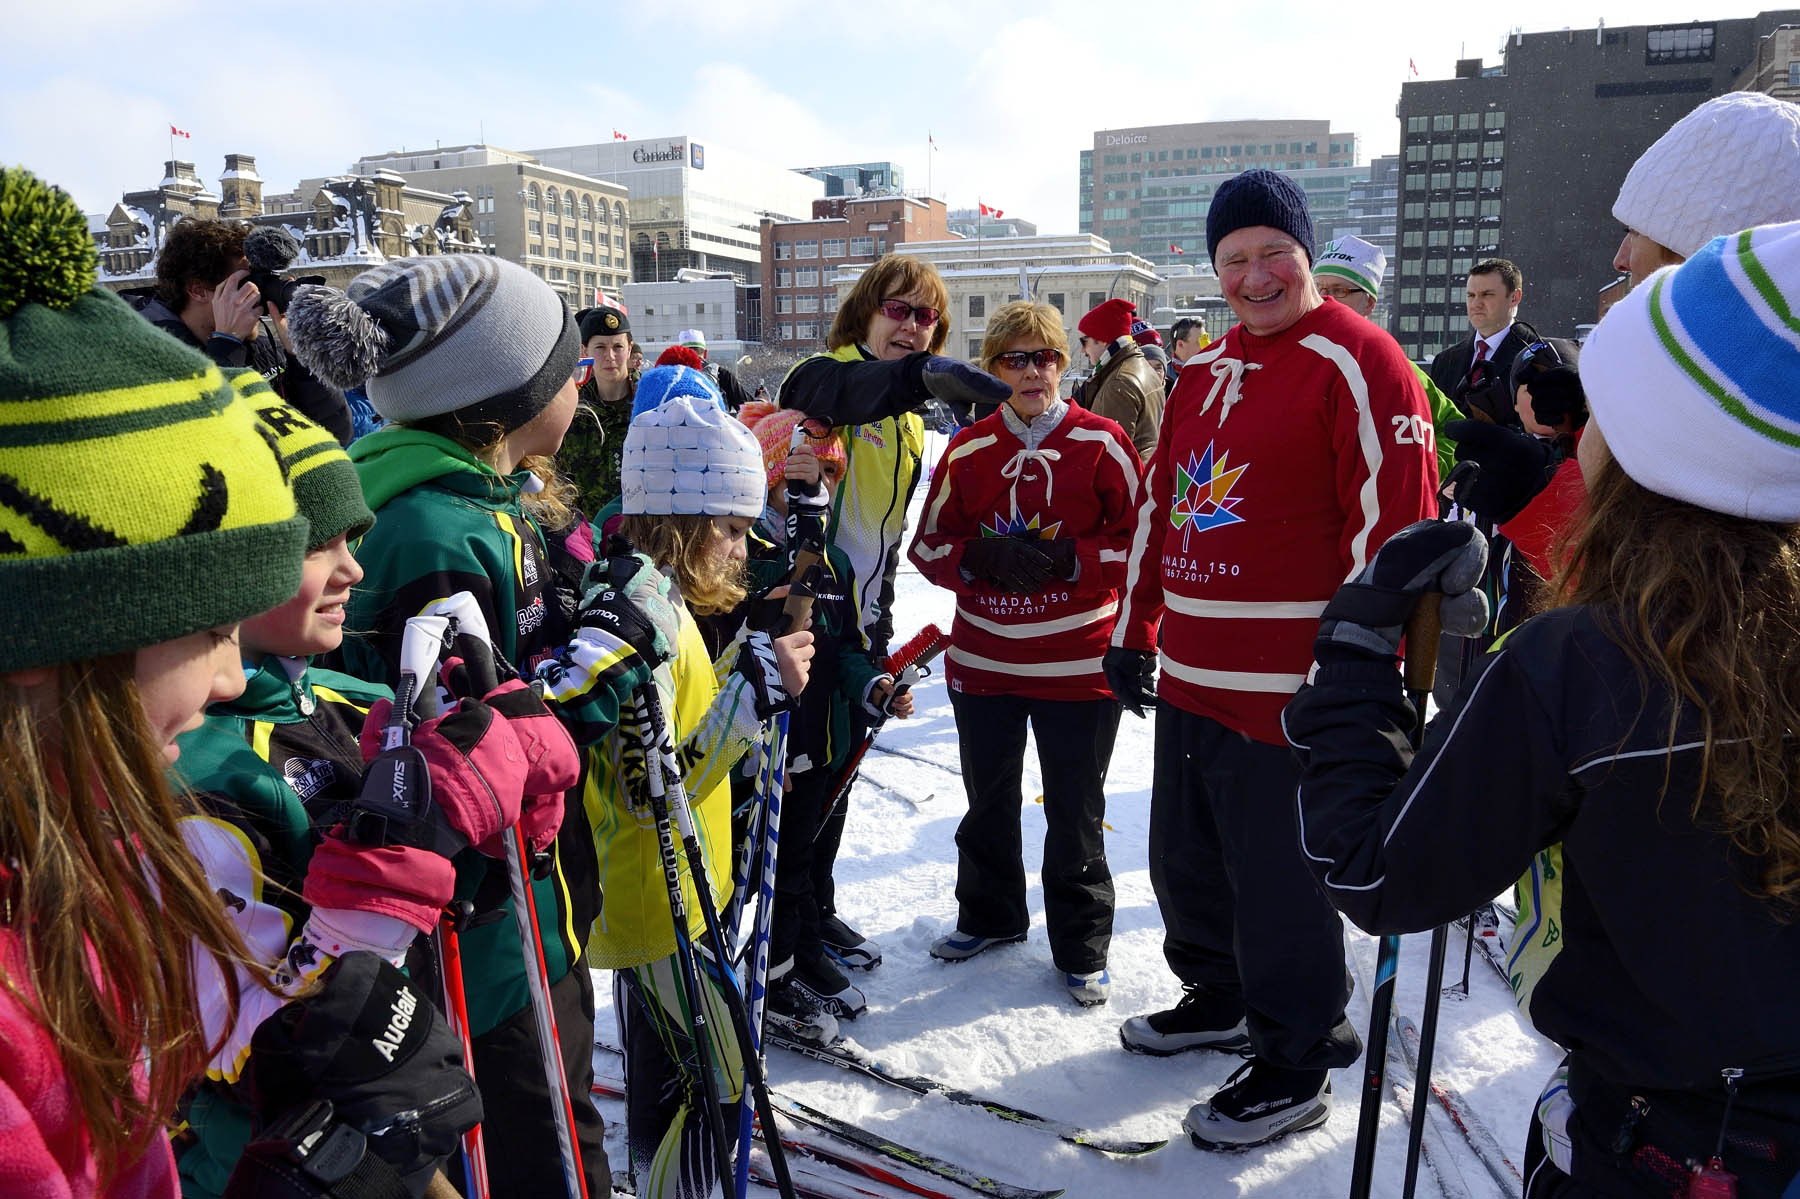 Their Excellencies participated in the second annual cross-country ski event on Parliament Hill.